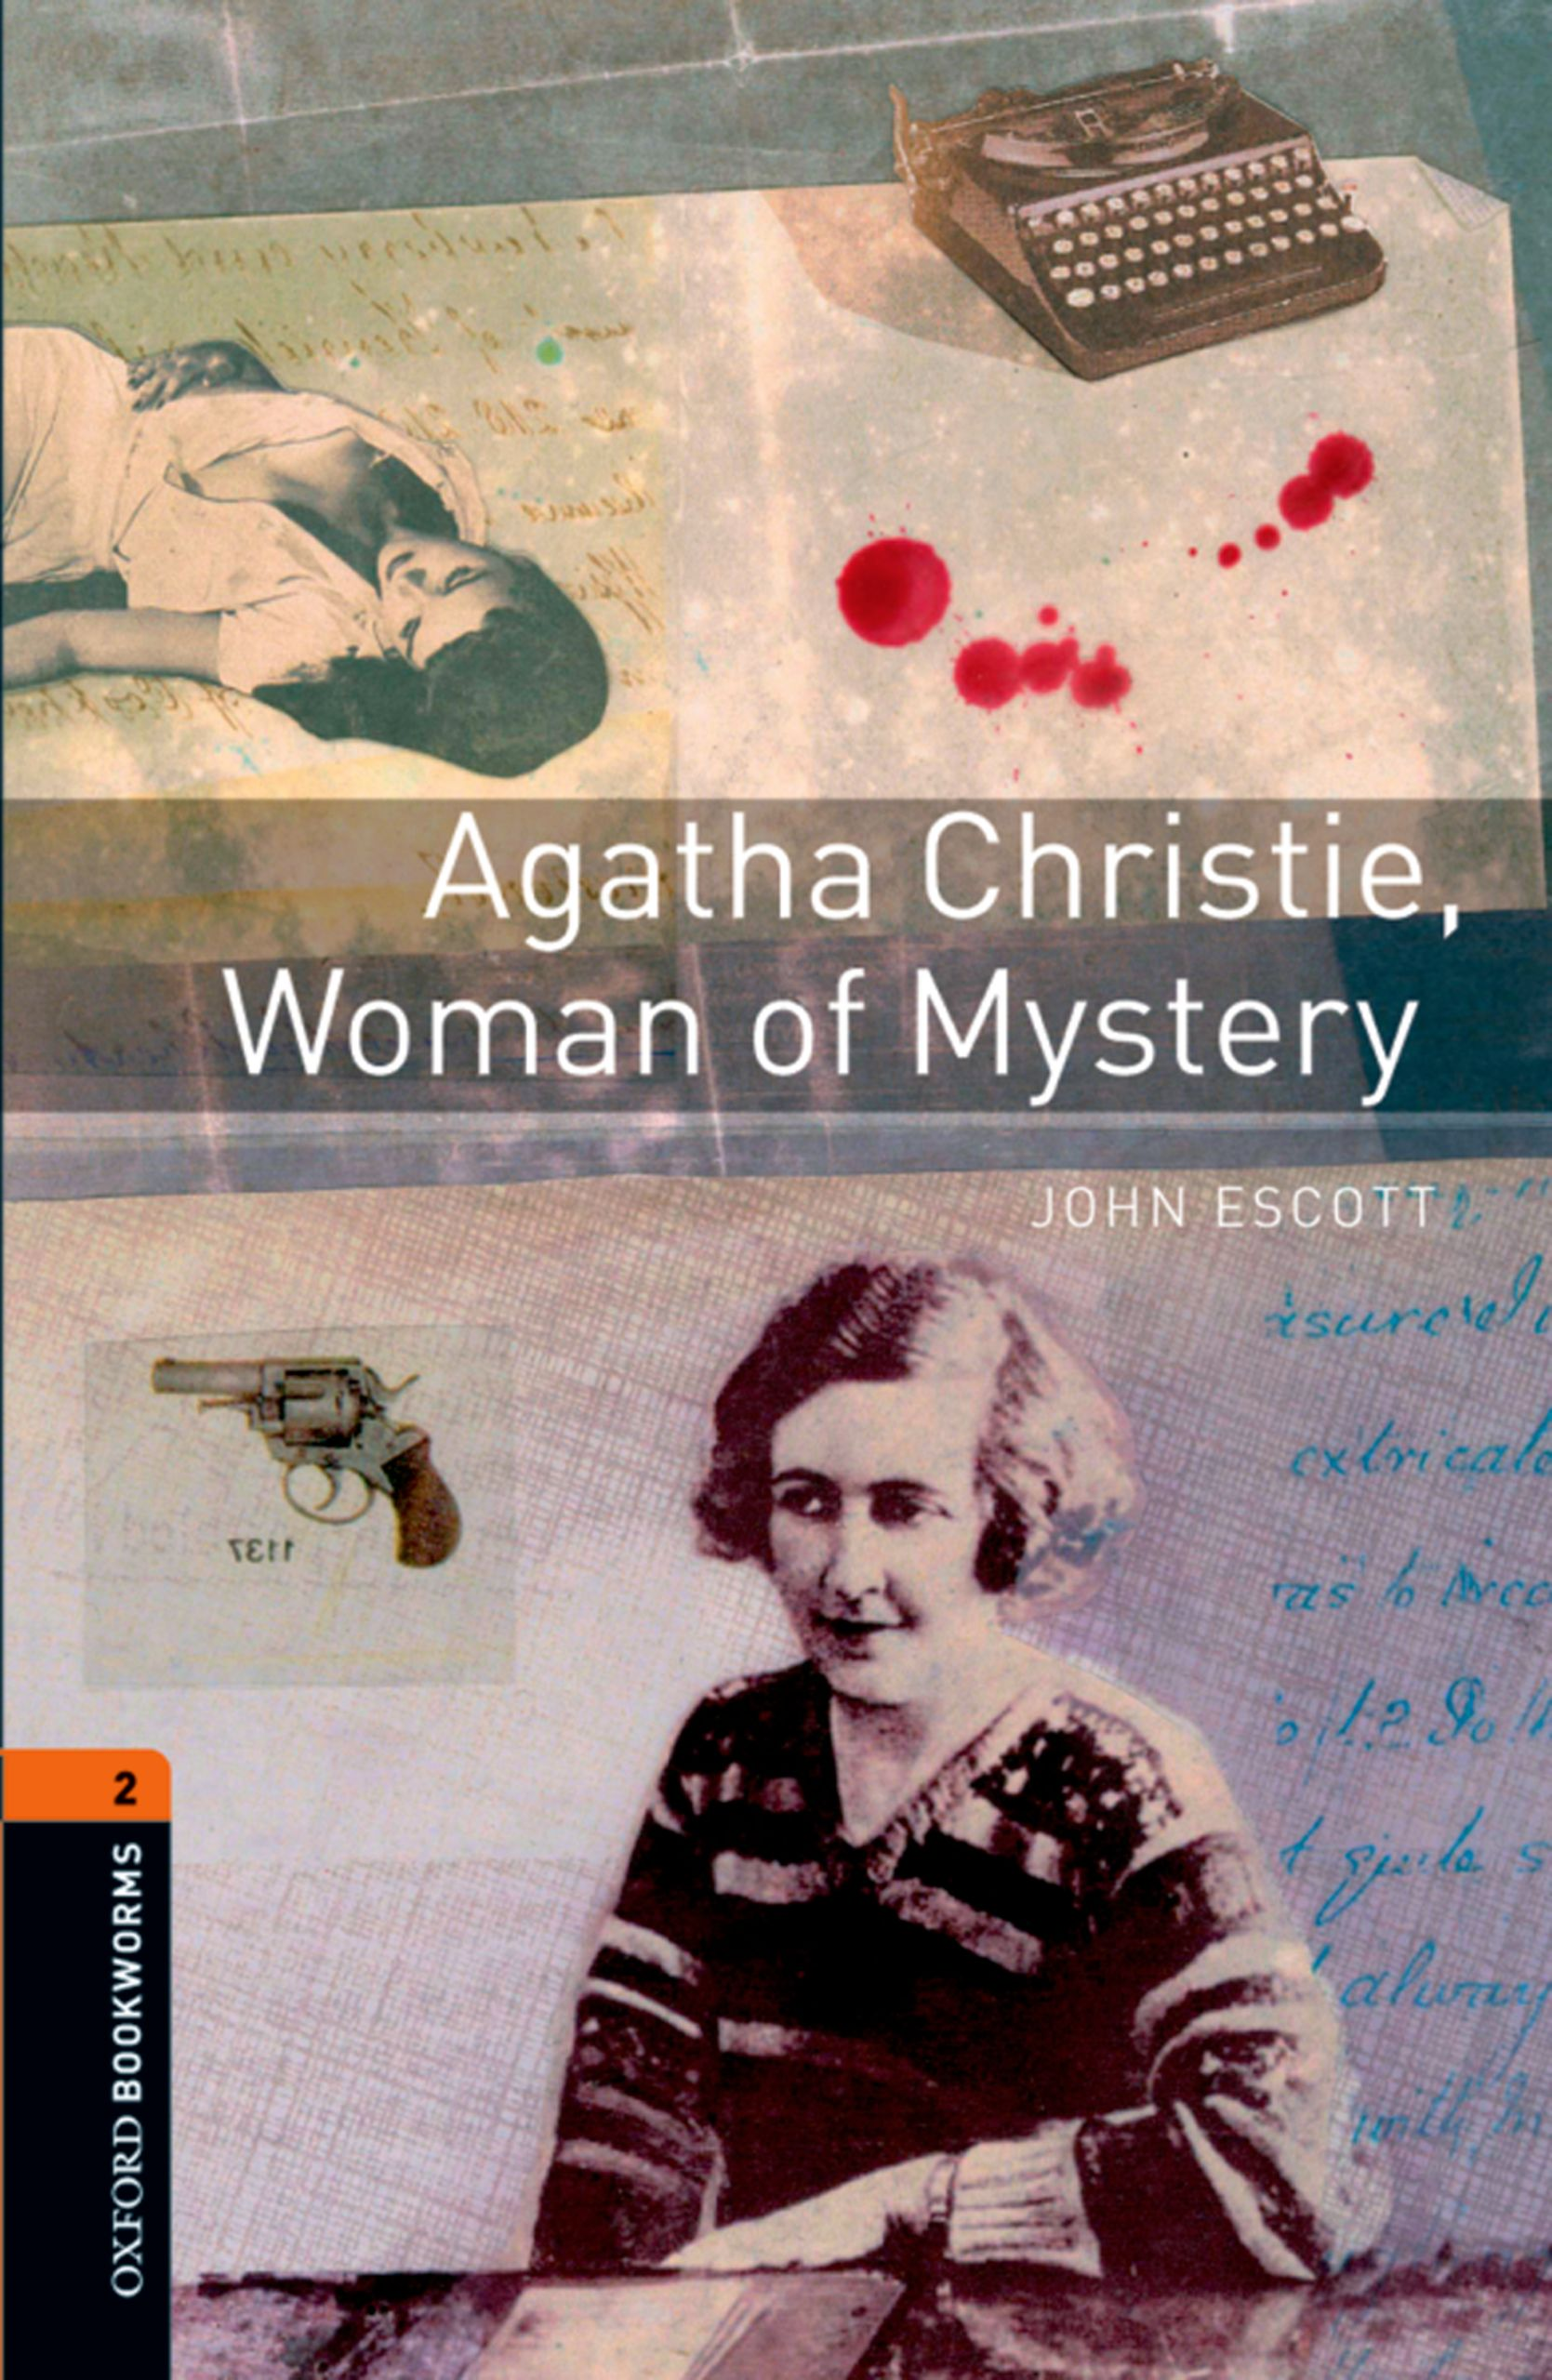 John Escott Agatha Christie, Woman of Mystery крышка 26 см eley крышка 26 см